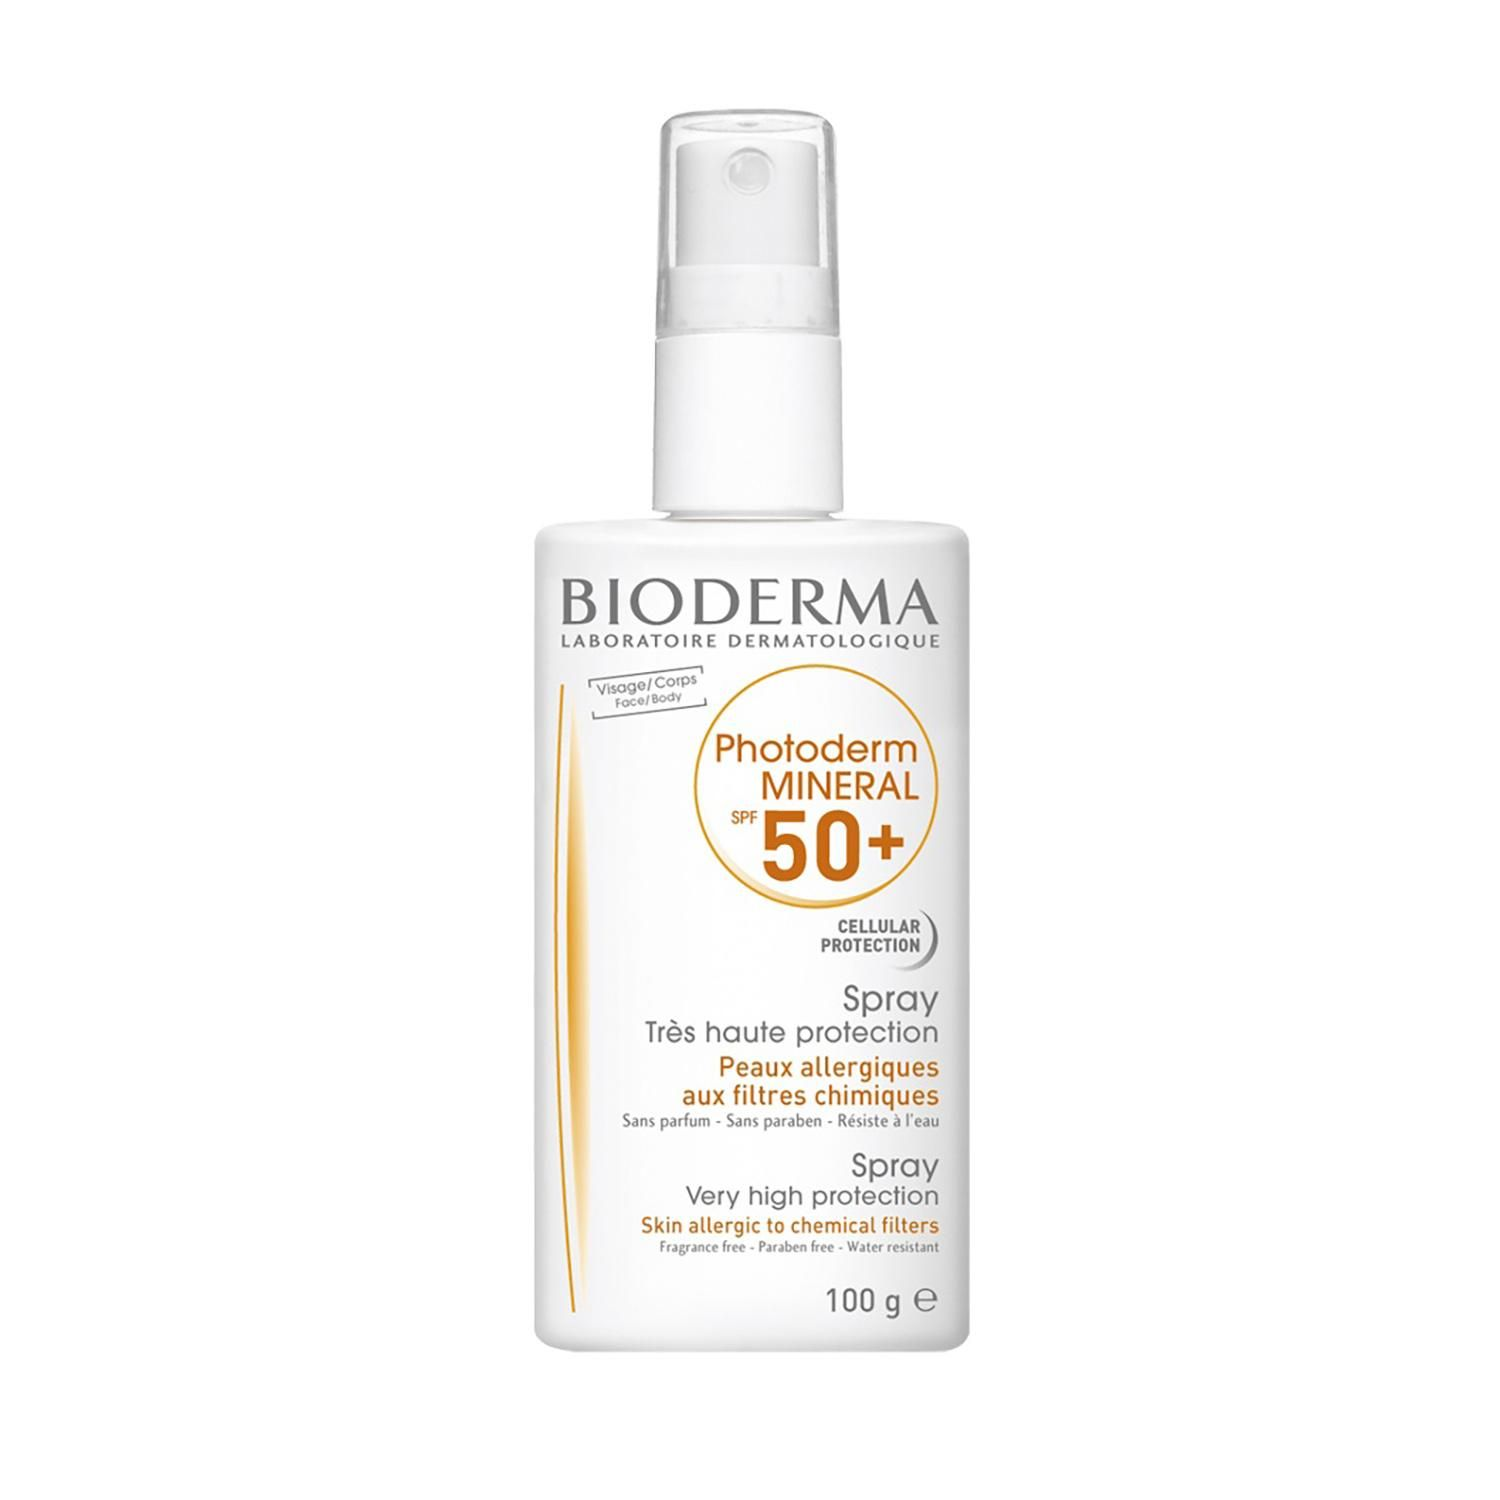 Bioderma Photoderm Mineral Spray FPS50+ 100g